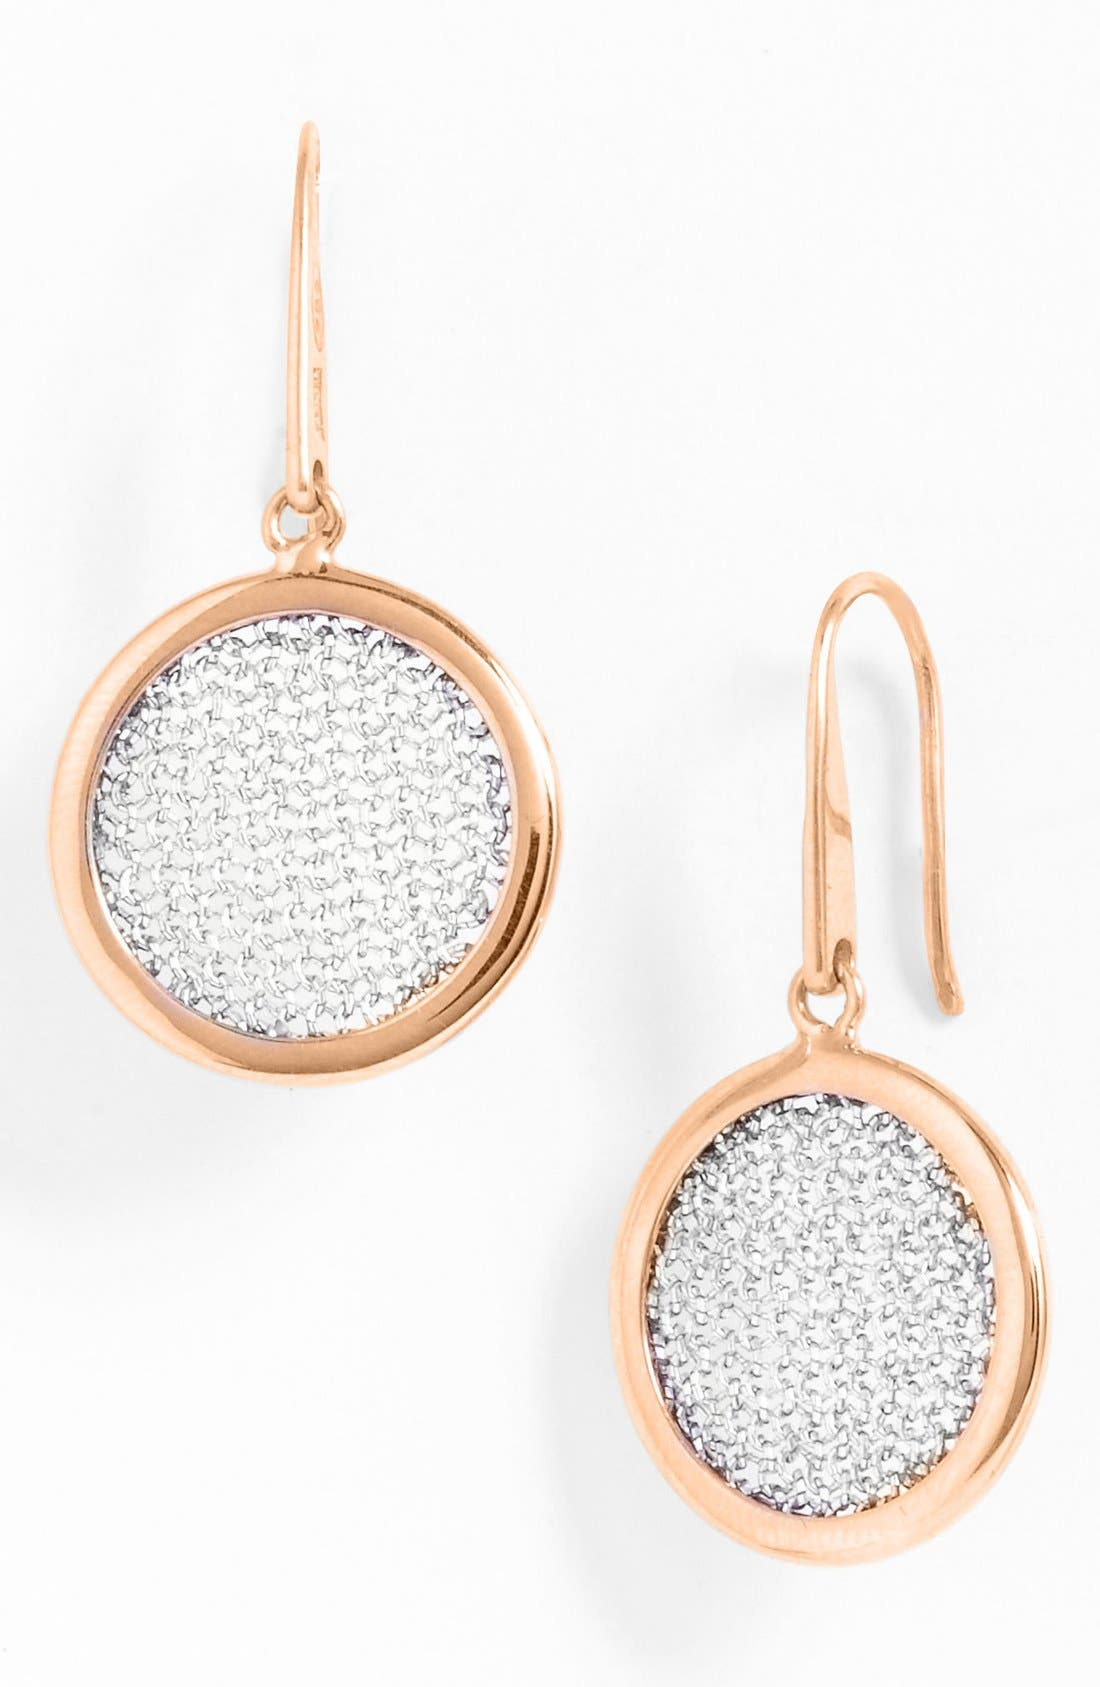 Main Image - Adami & Martucci 'Mesh' Round Drop Earrings (Nordstrom Exclusive)